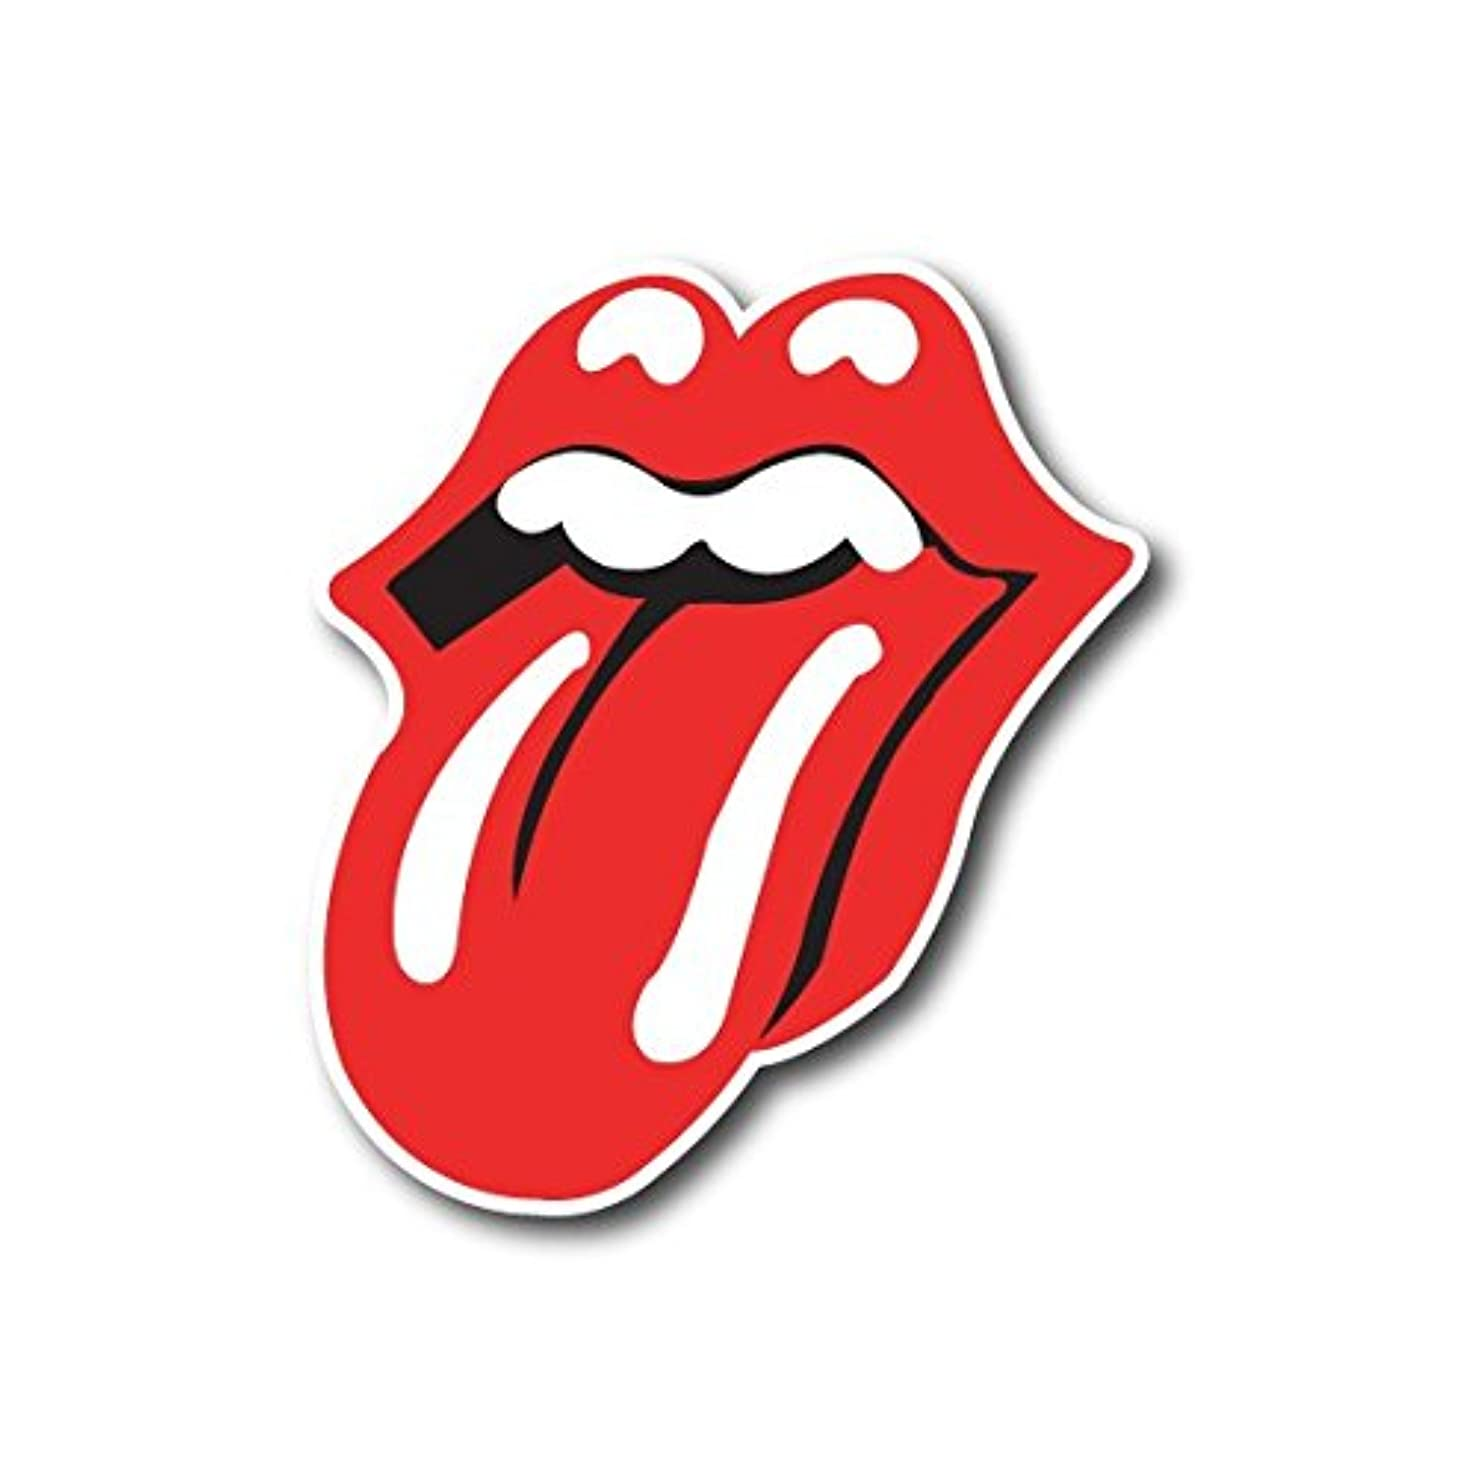 The Rolling Stones Sticker Rock Band Decal for Car Window, Bumper, Laptop, Skateboard, Wall, ETC. (3